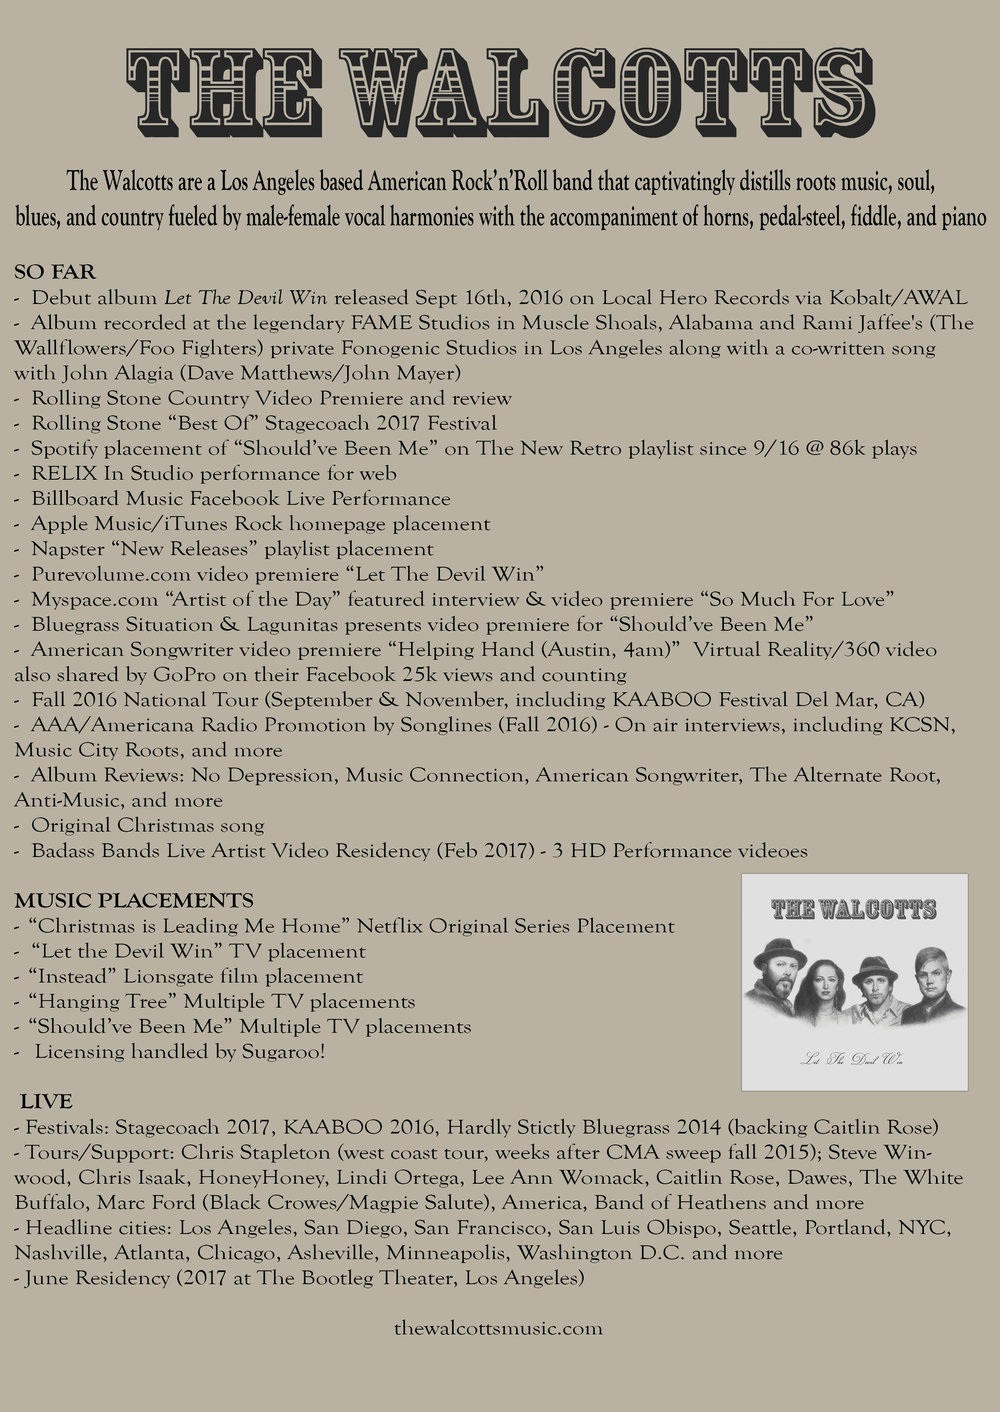 Walcotts One-Sheet.jpg